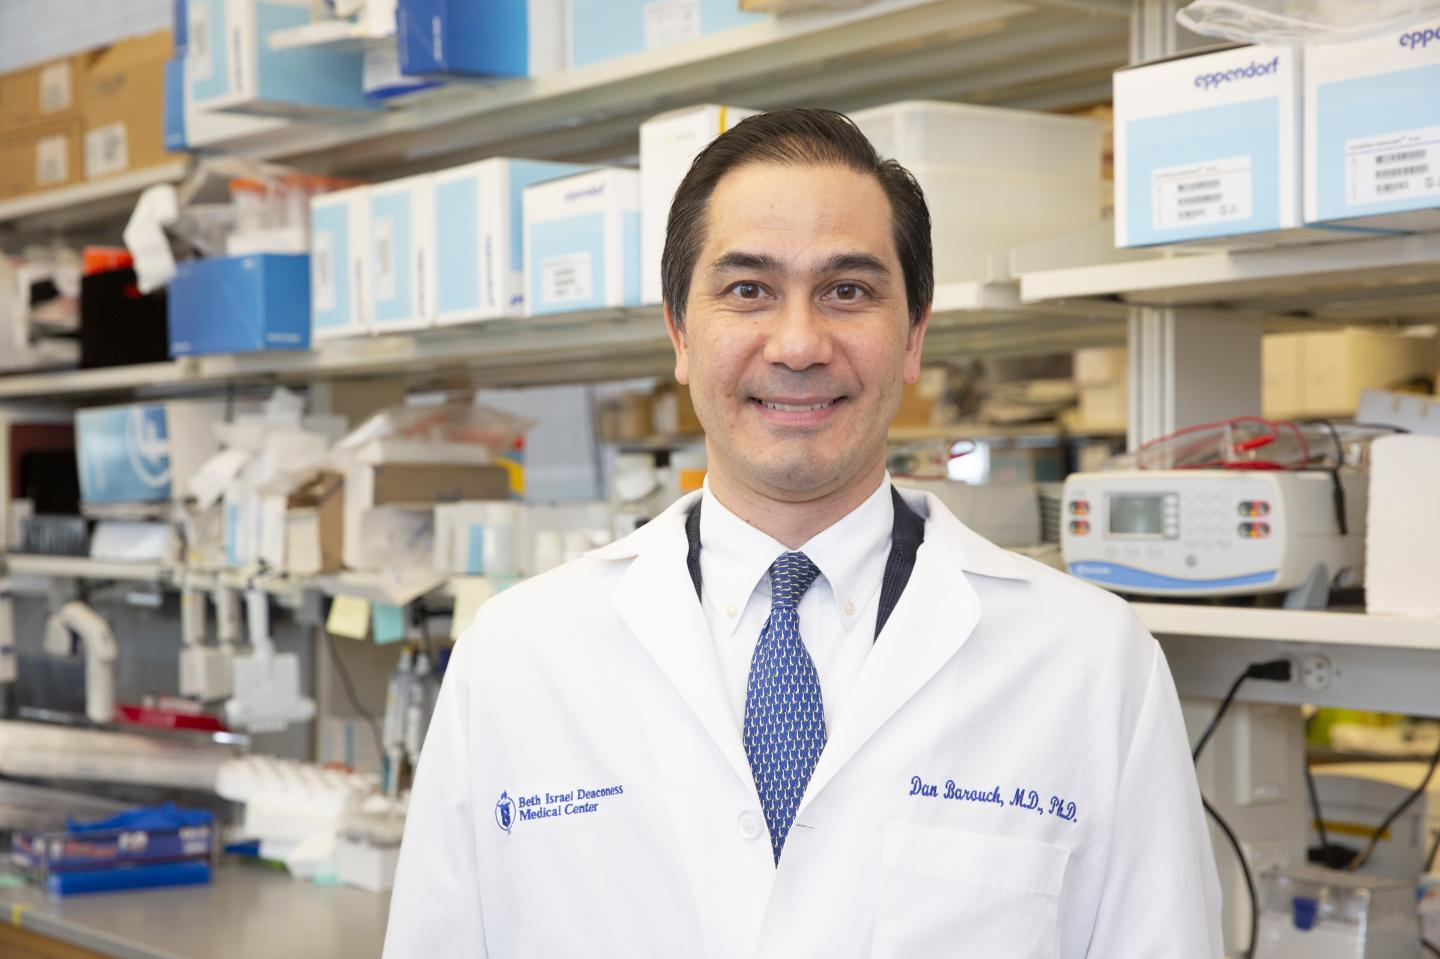 Dan H. Barouch, MD, PhD, Director of the Center for Virology and Vaccine Research at BIDMC